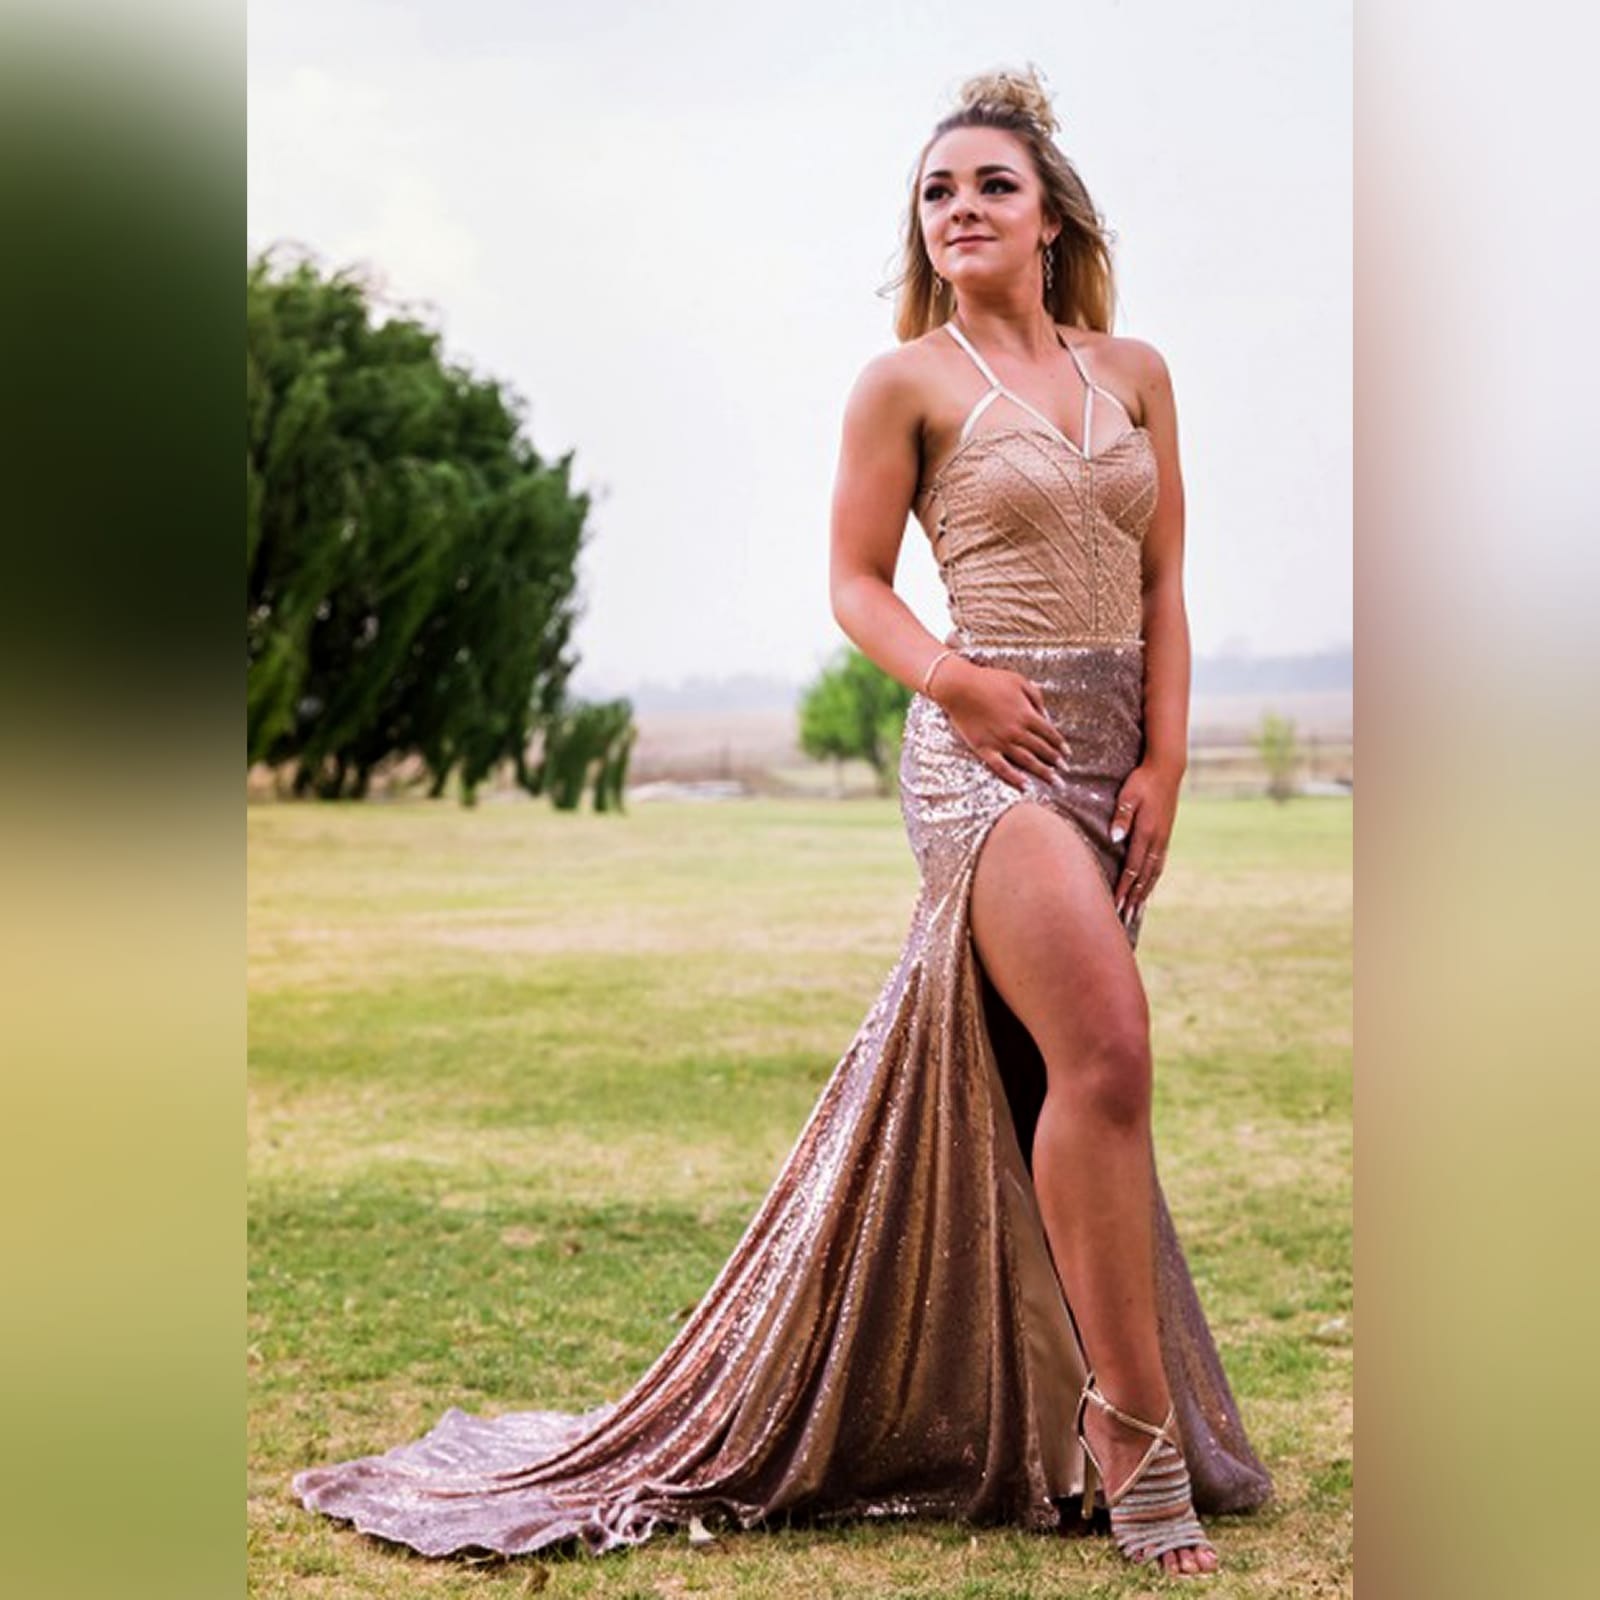 Rose gold sequins beaded matric dance dress with a beaded bodice 1 rose gold sequins beaded matric dance dress with a beaded bodice, an open lace-up back. High slit and a train.